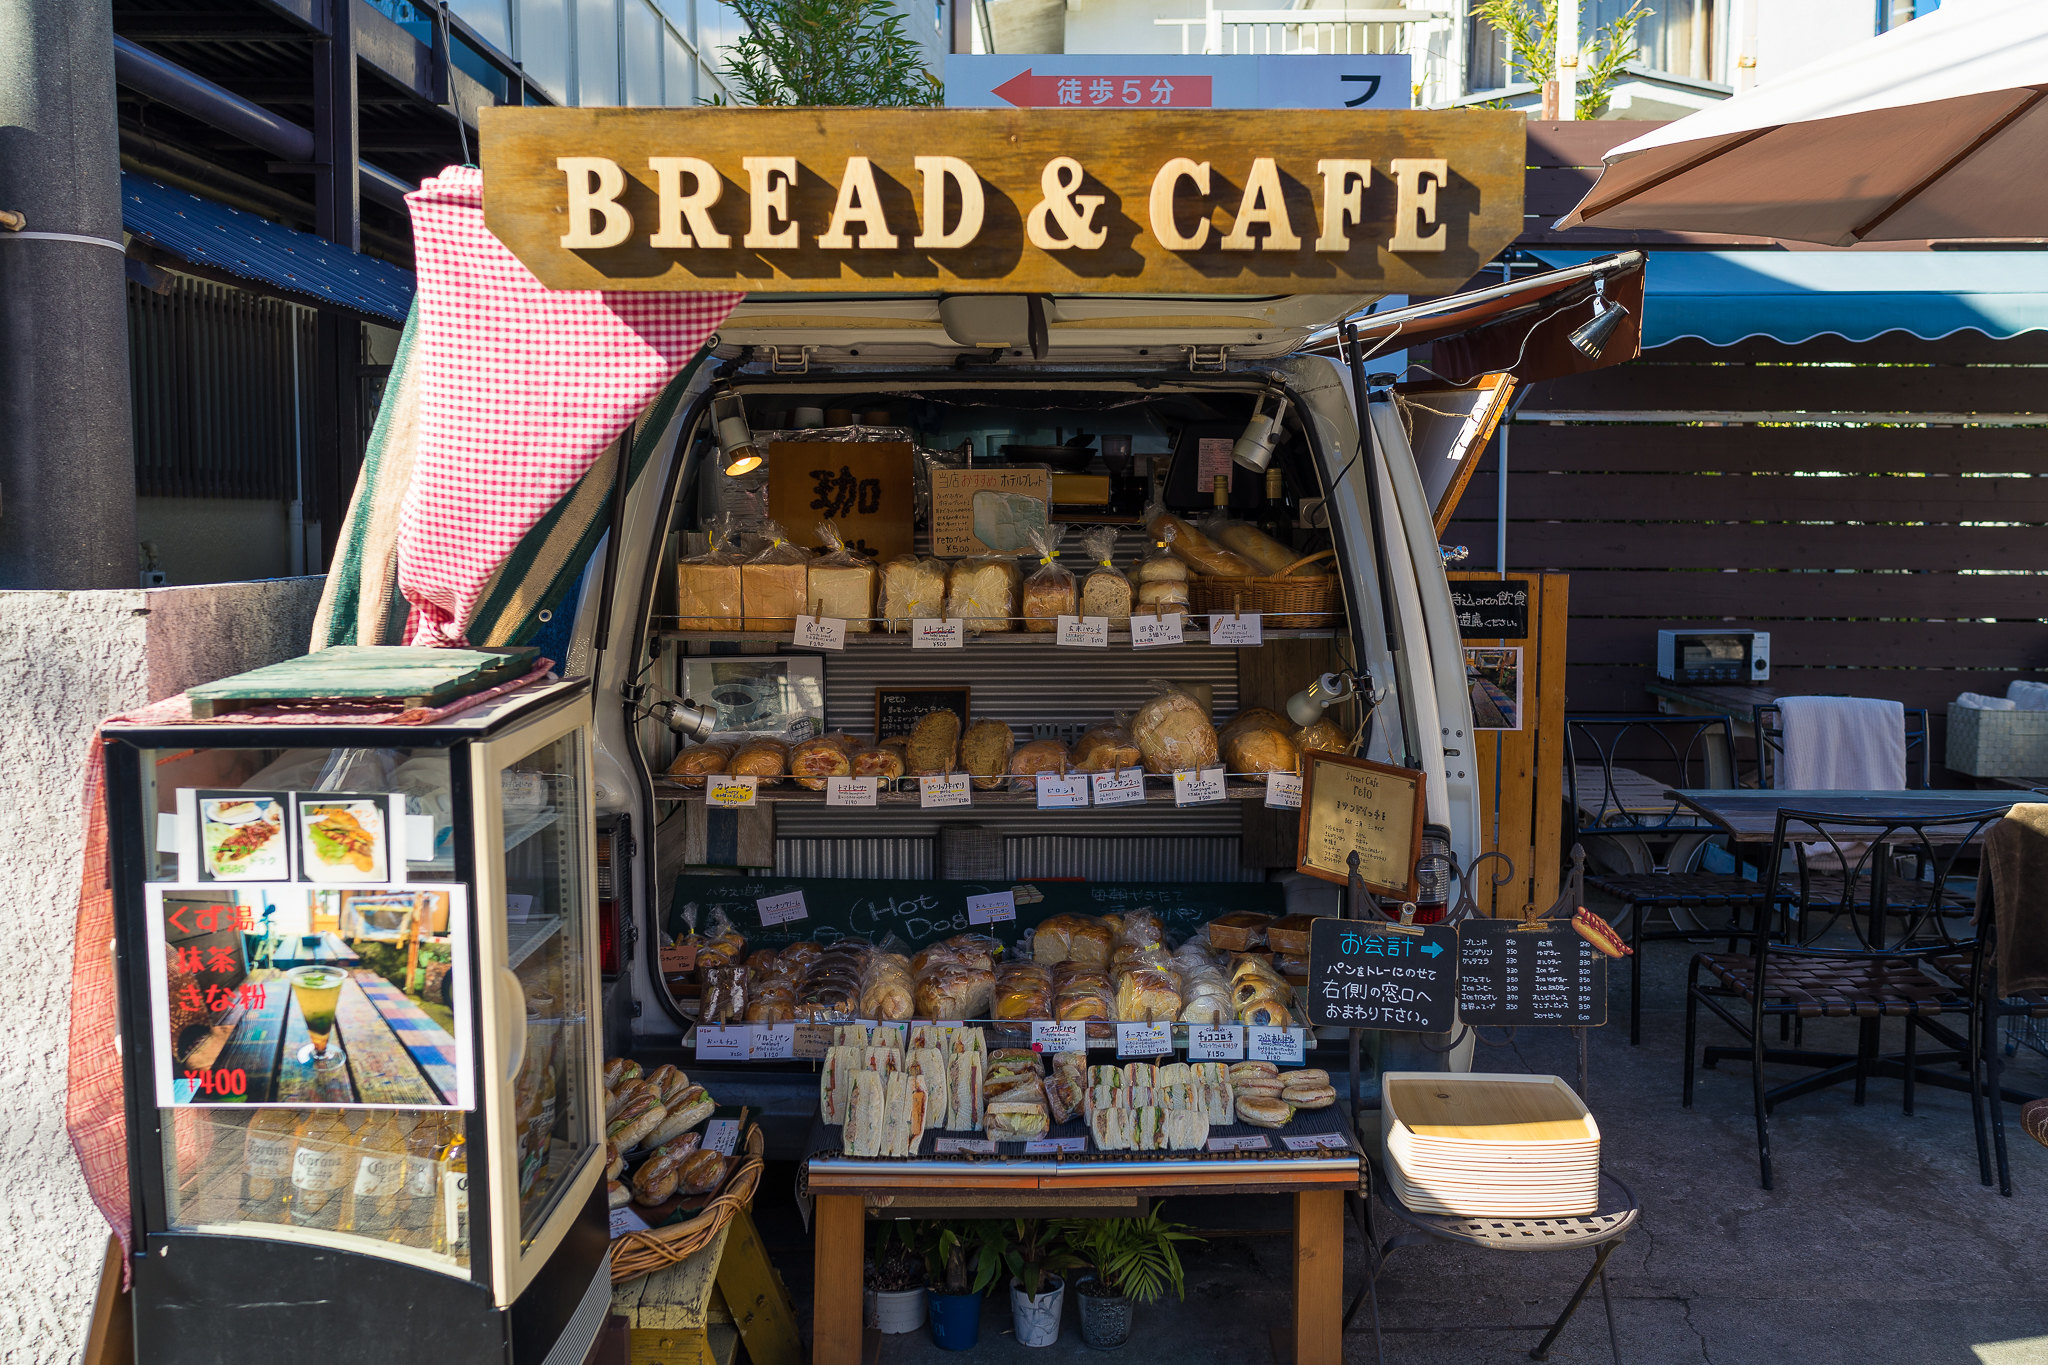 Bread & Cafe